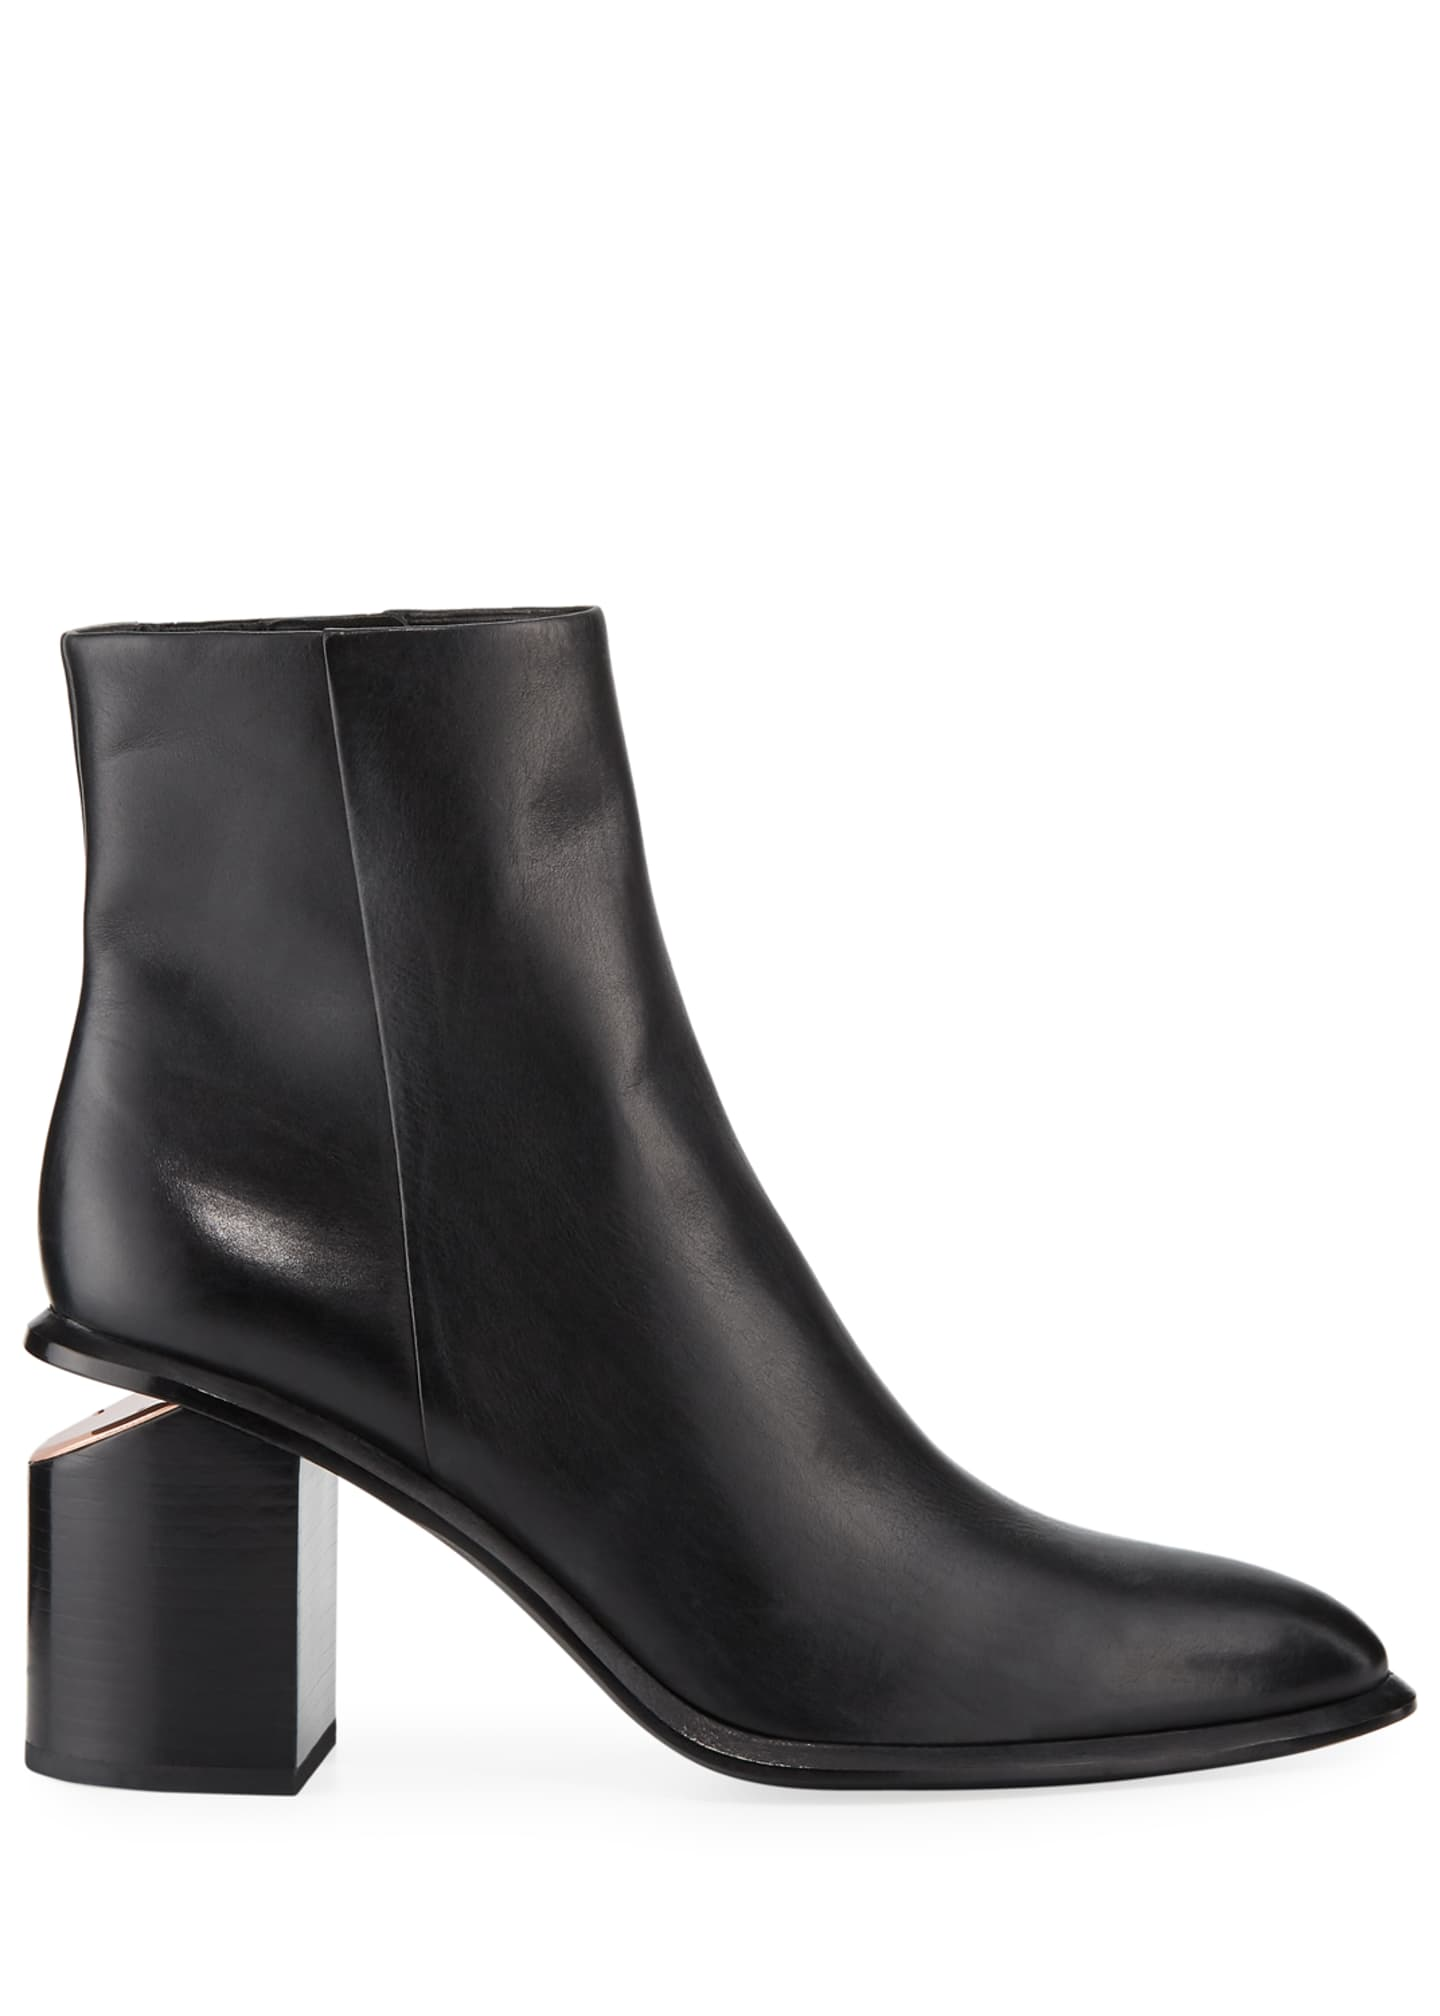 Image 2 of 3: Anna Block-Heel Leather Booties - Rose-Tone Hardware